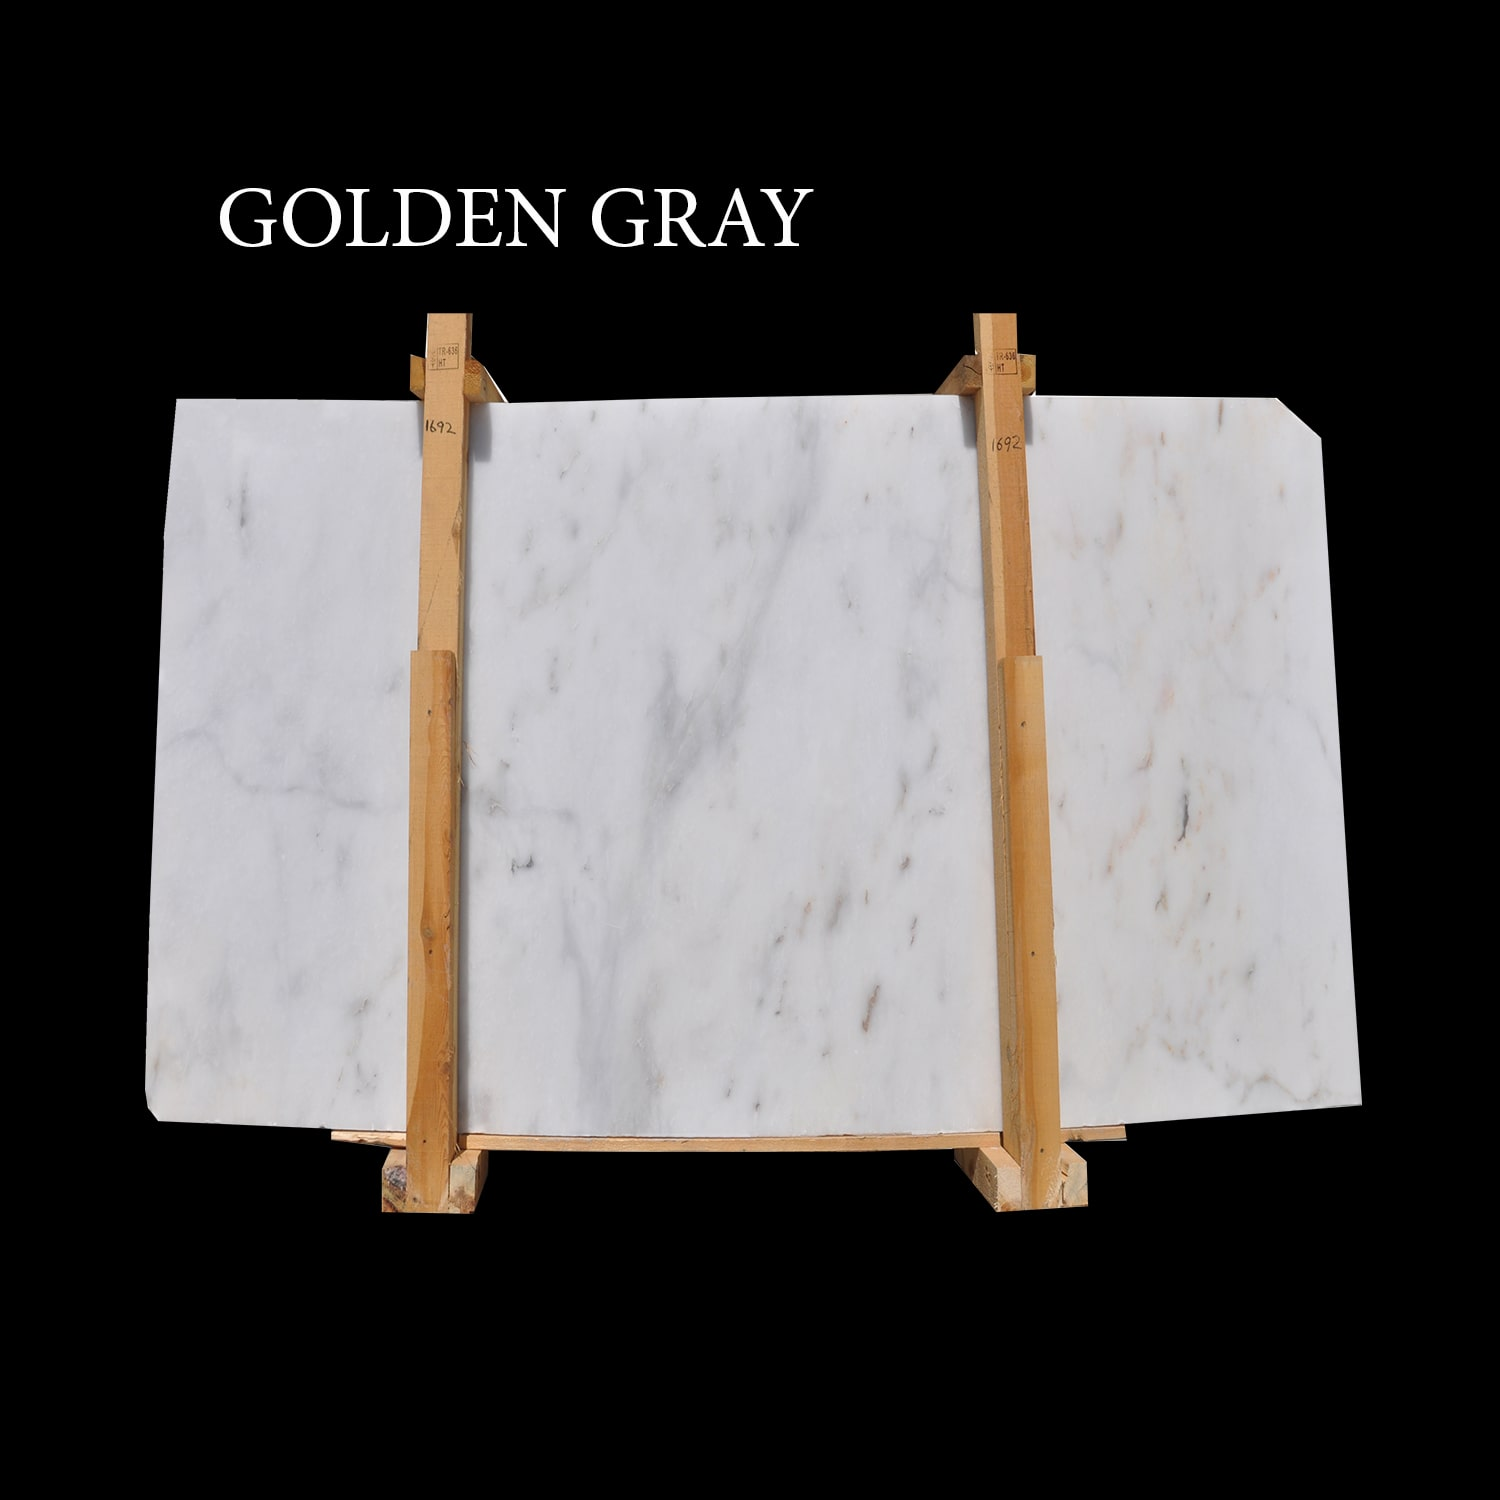 Afyon White Slabs  Golden Gray Slabs